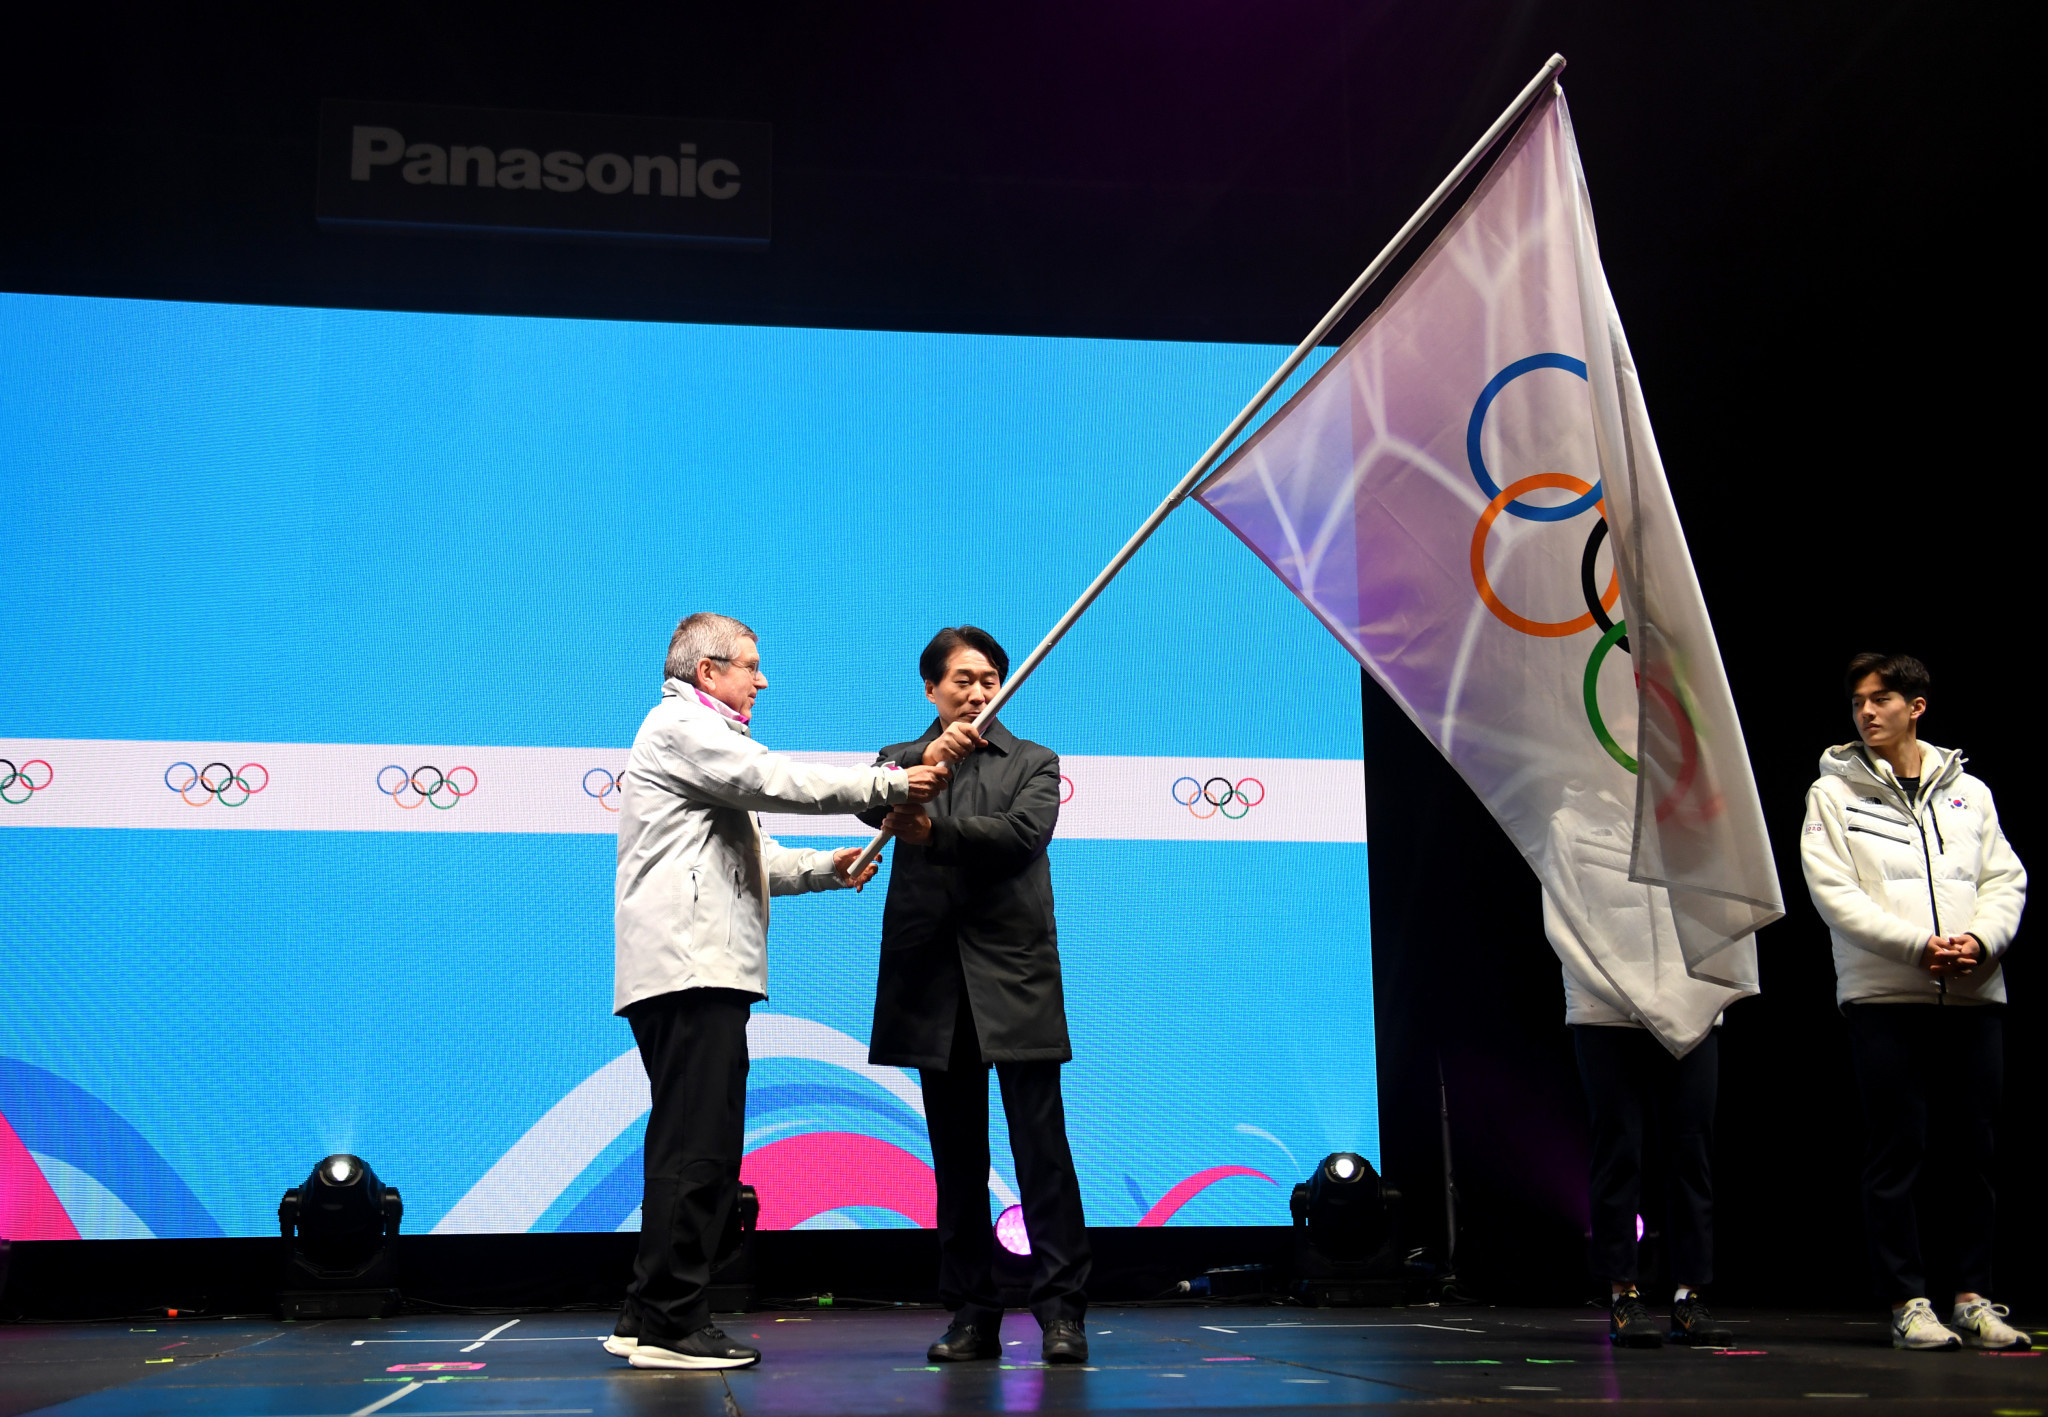 Gangwon is set to stage the next edition of the Youth Olympic Games in 2024 ©Getty Images